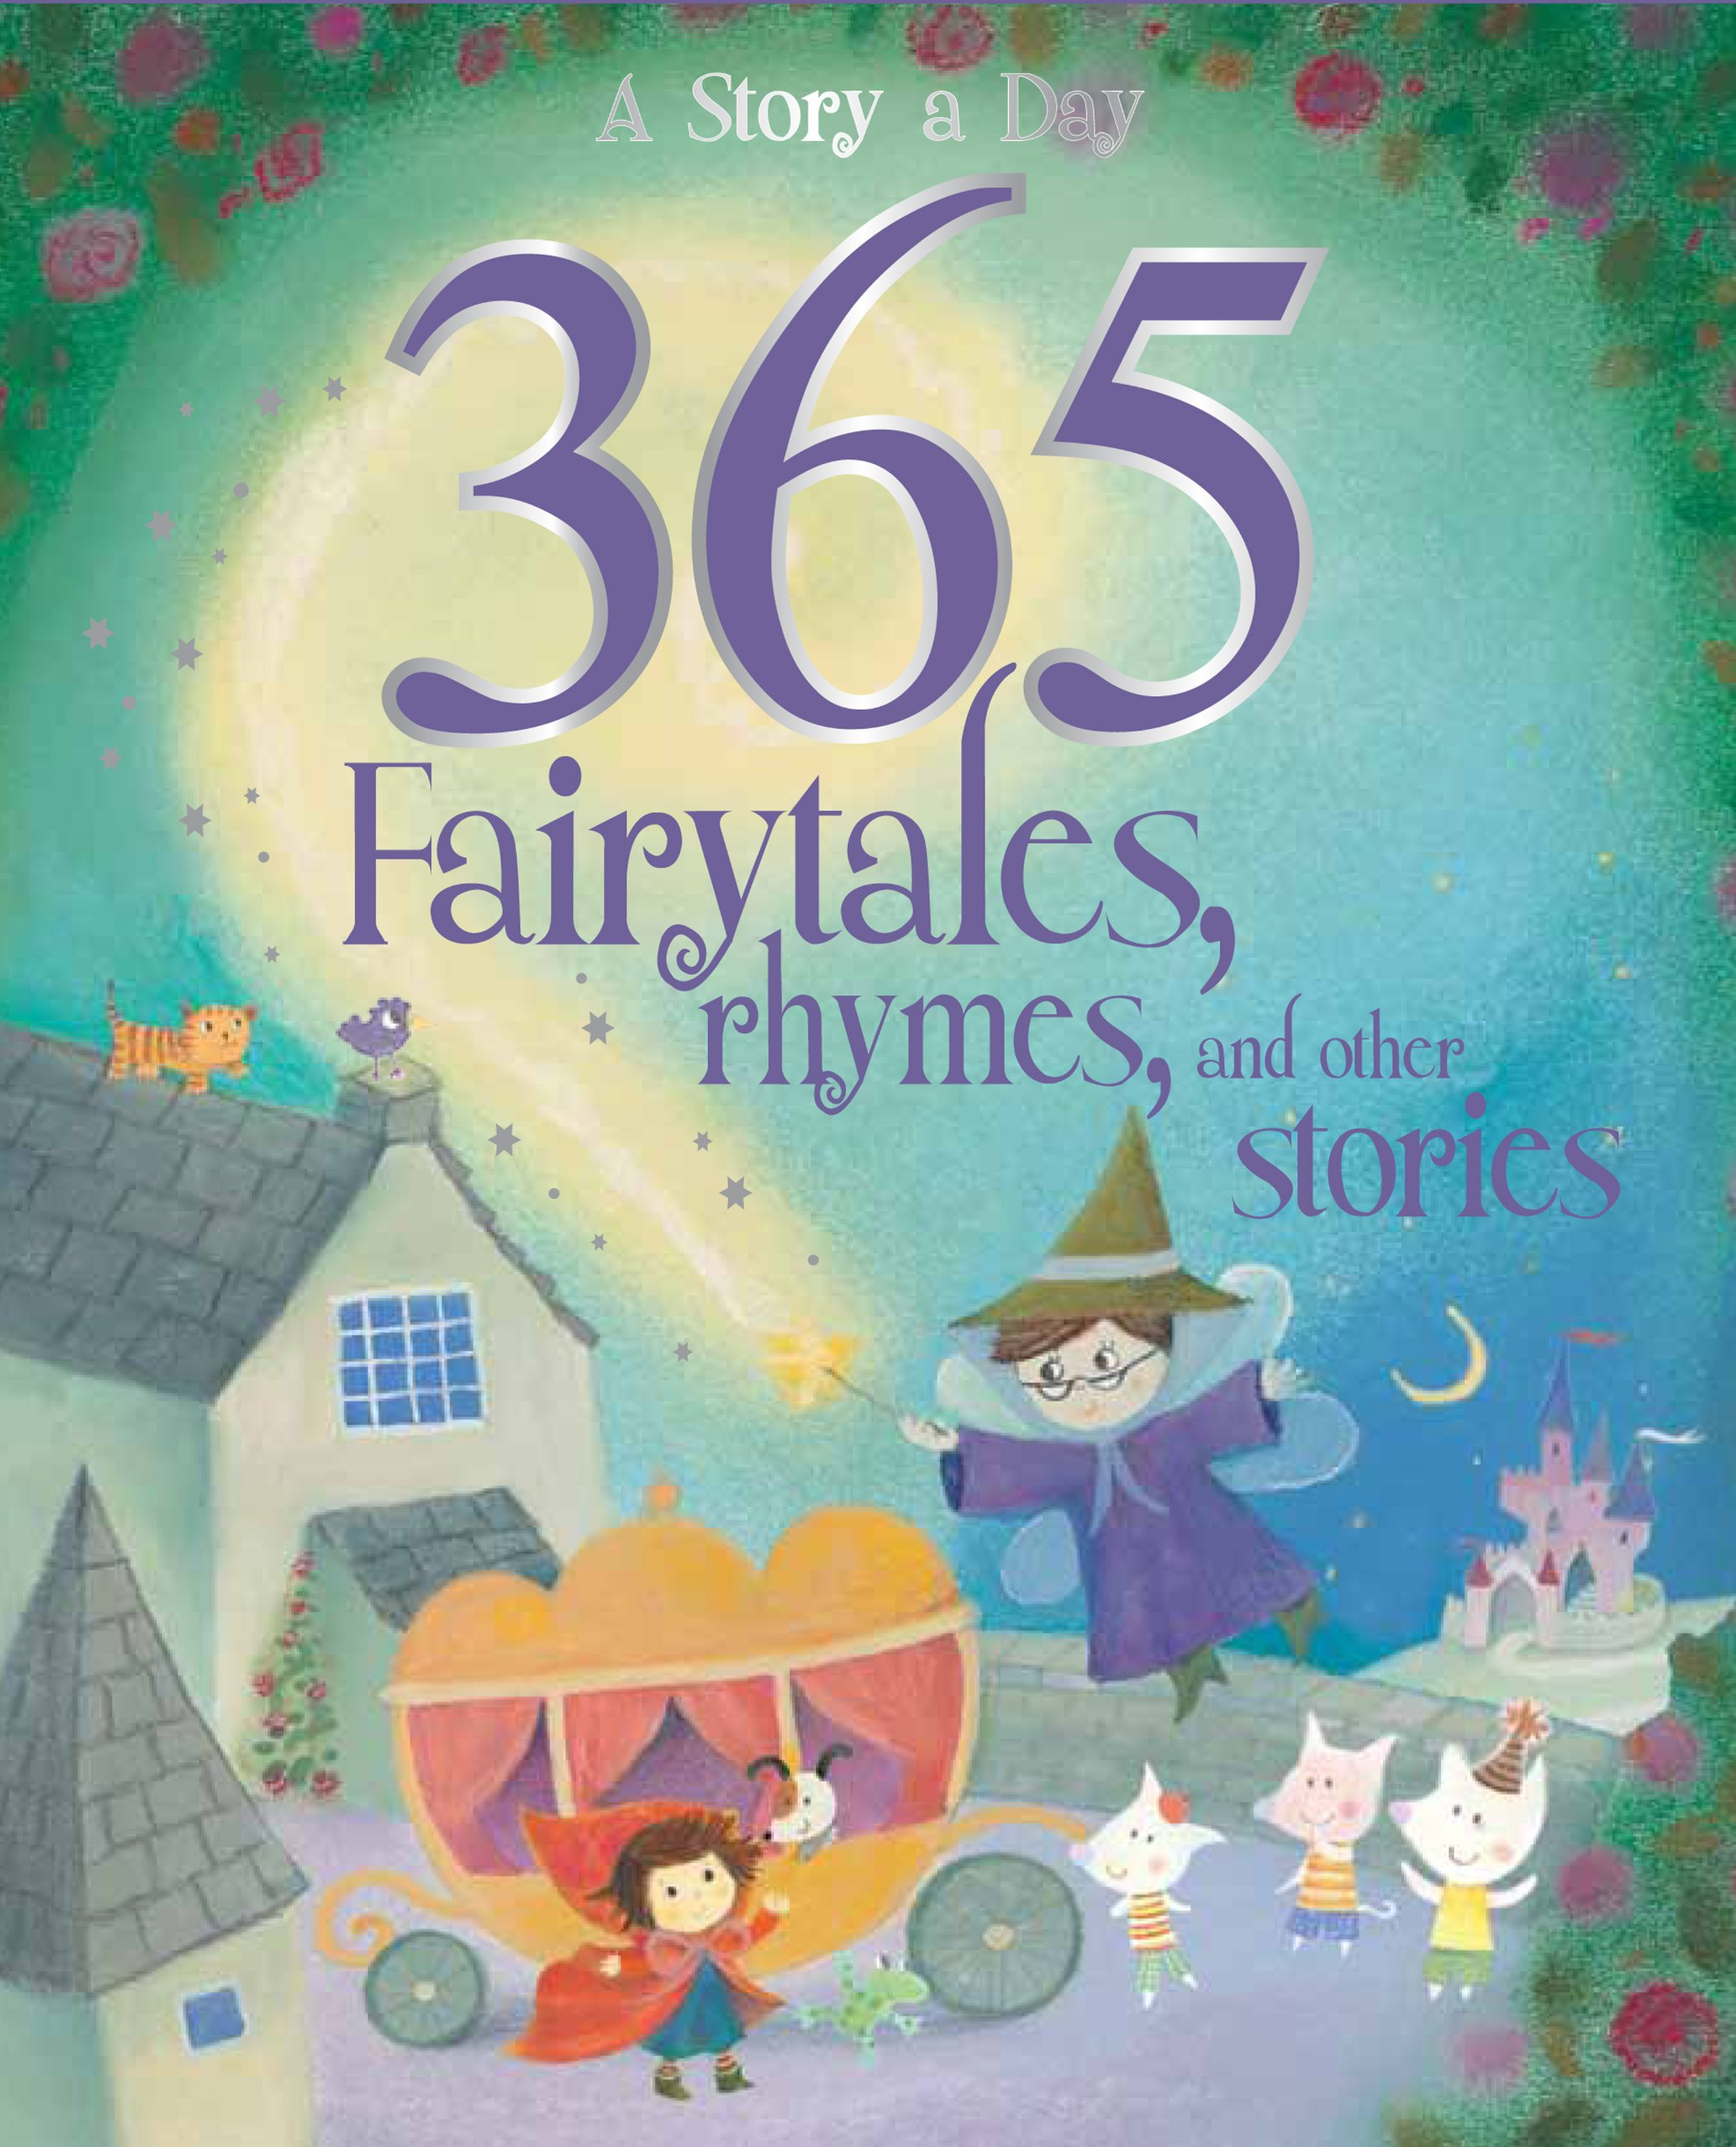 fairy tales 365 a story a day